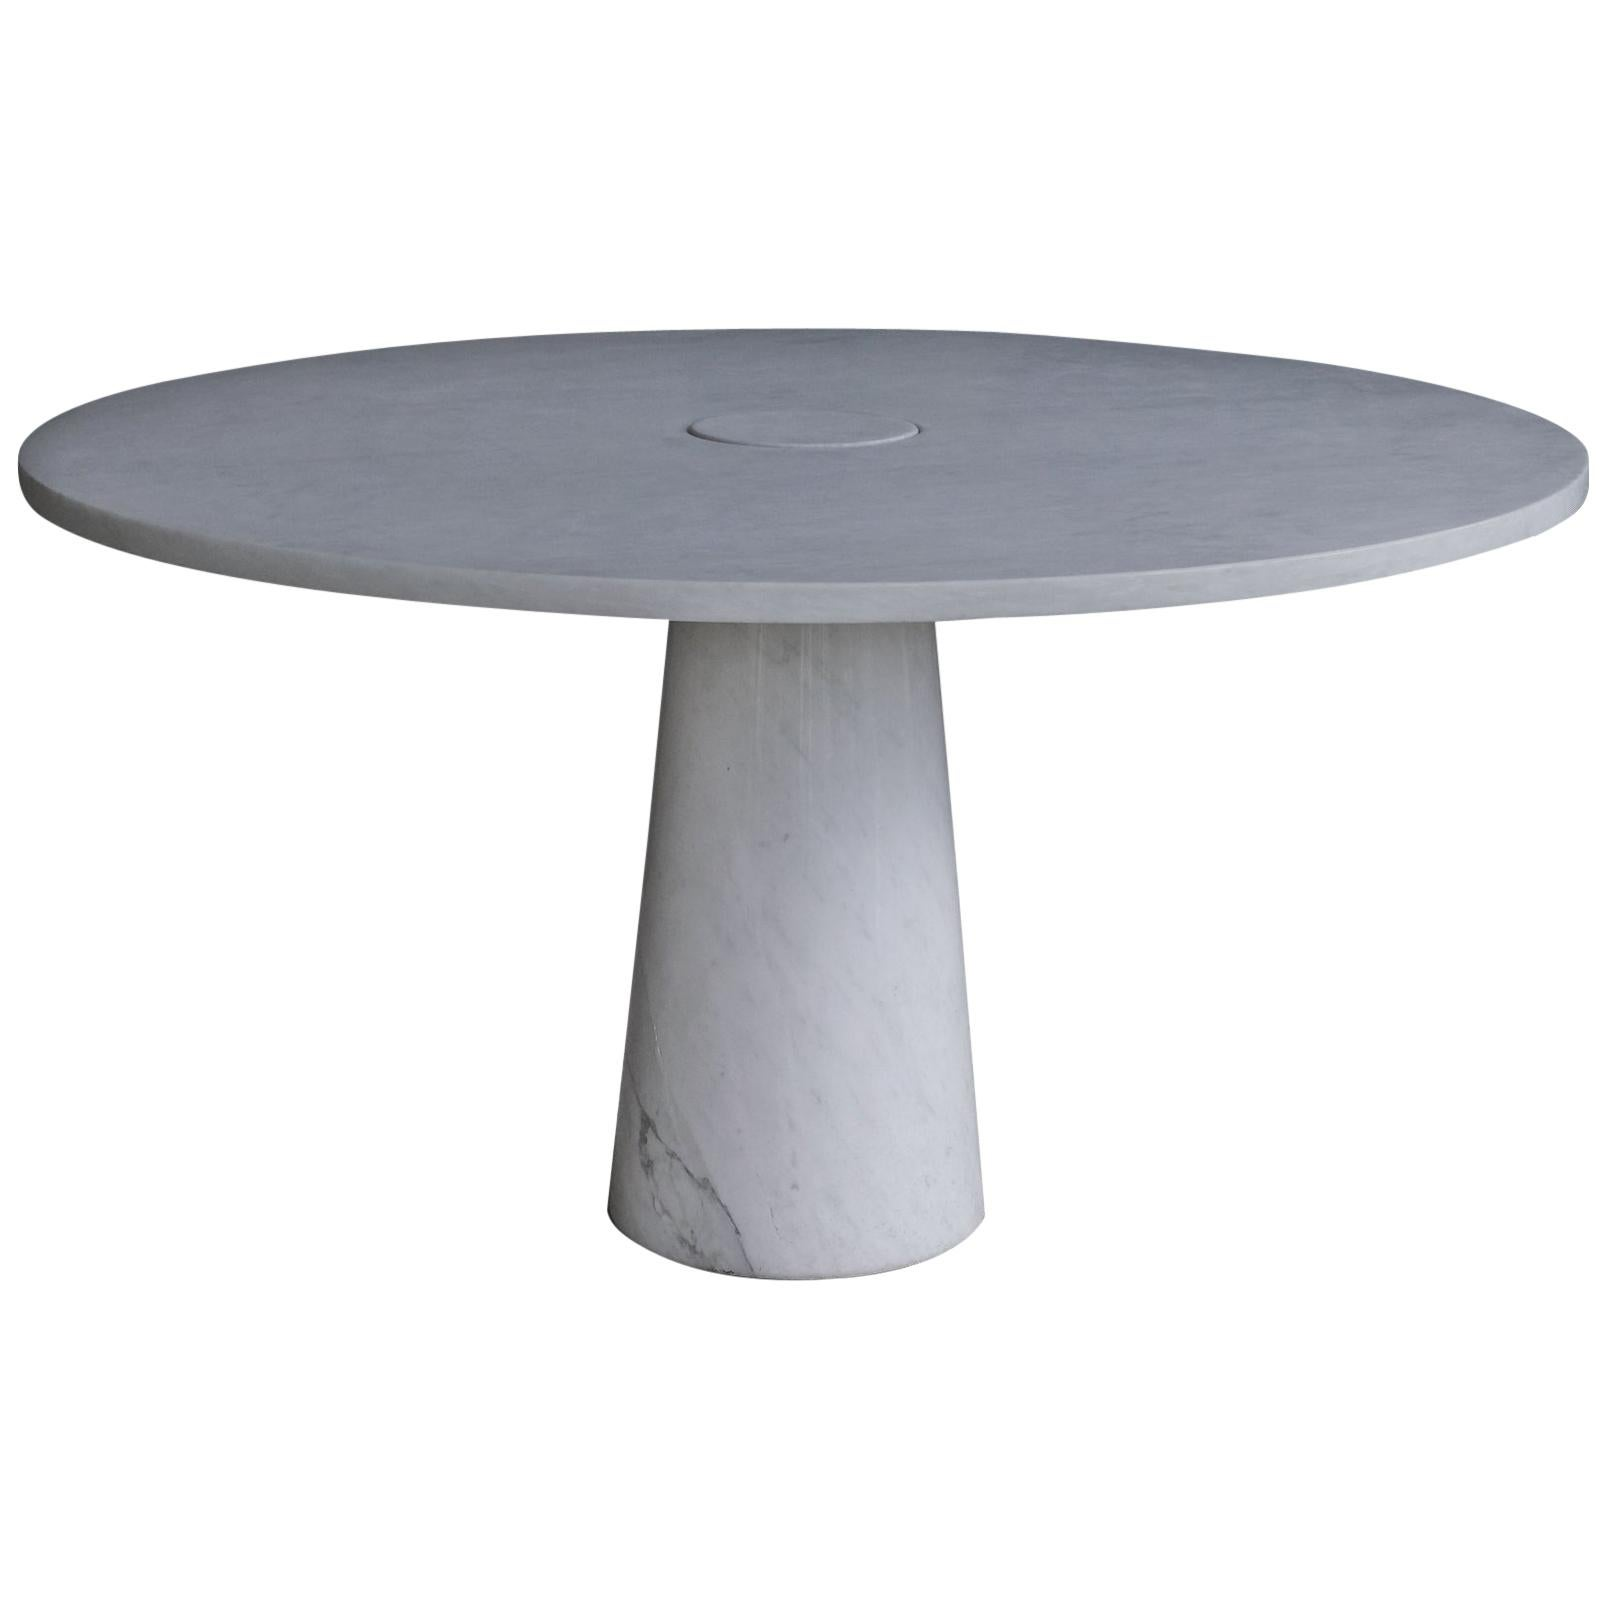 "Angelo Mangiarotti, ""Eros"", Dining Table, Skipper, 1970s"